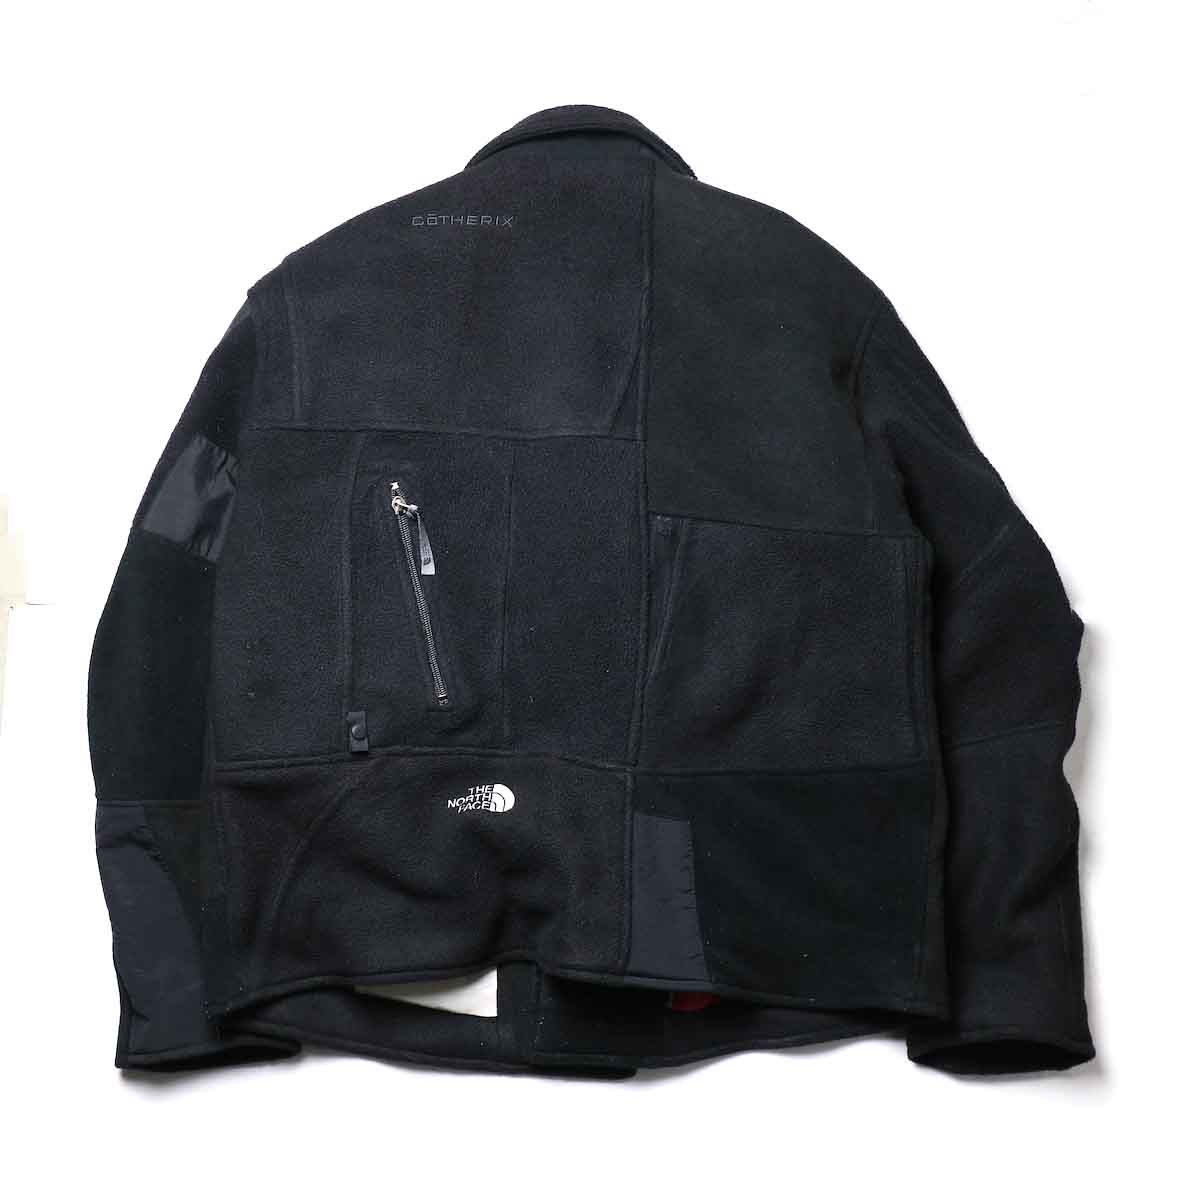 OLD PARK / Oversized Riders Jacket -Outdoor 背面